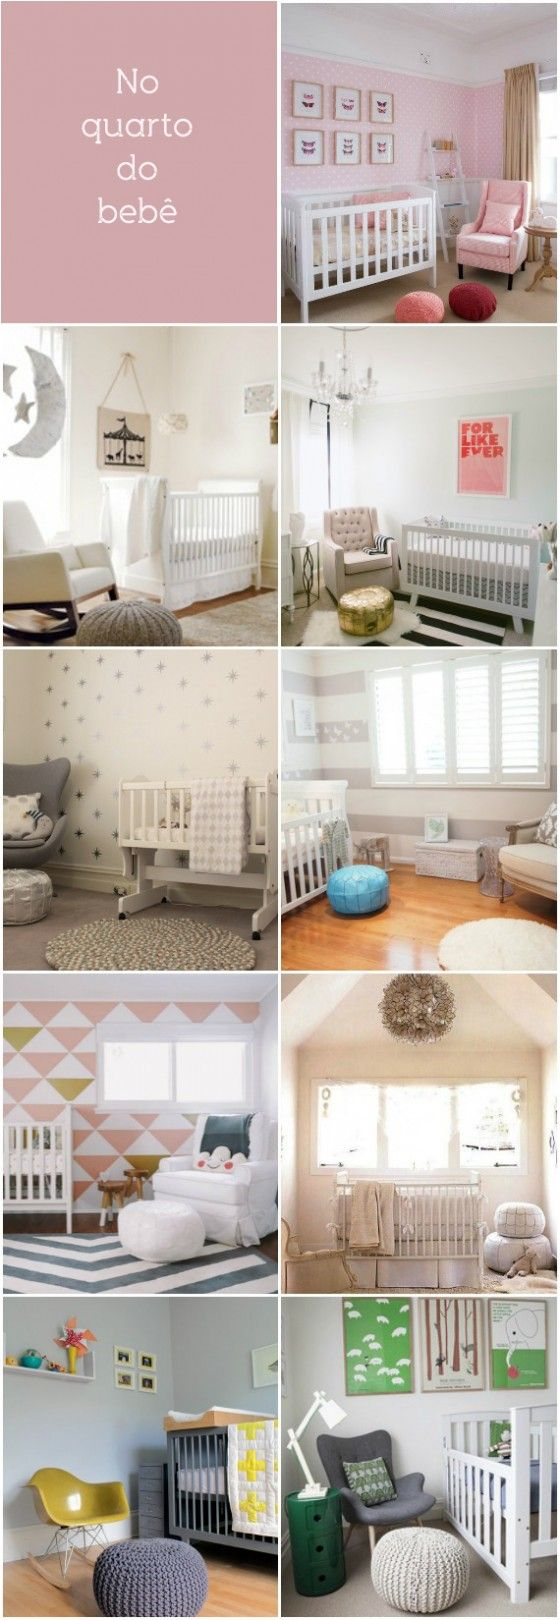 pouf in baby's room